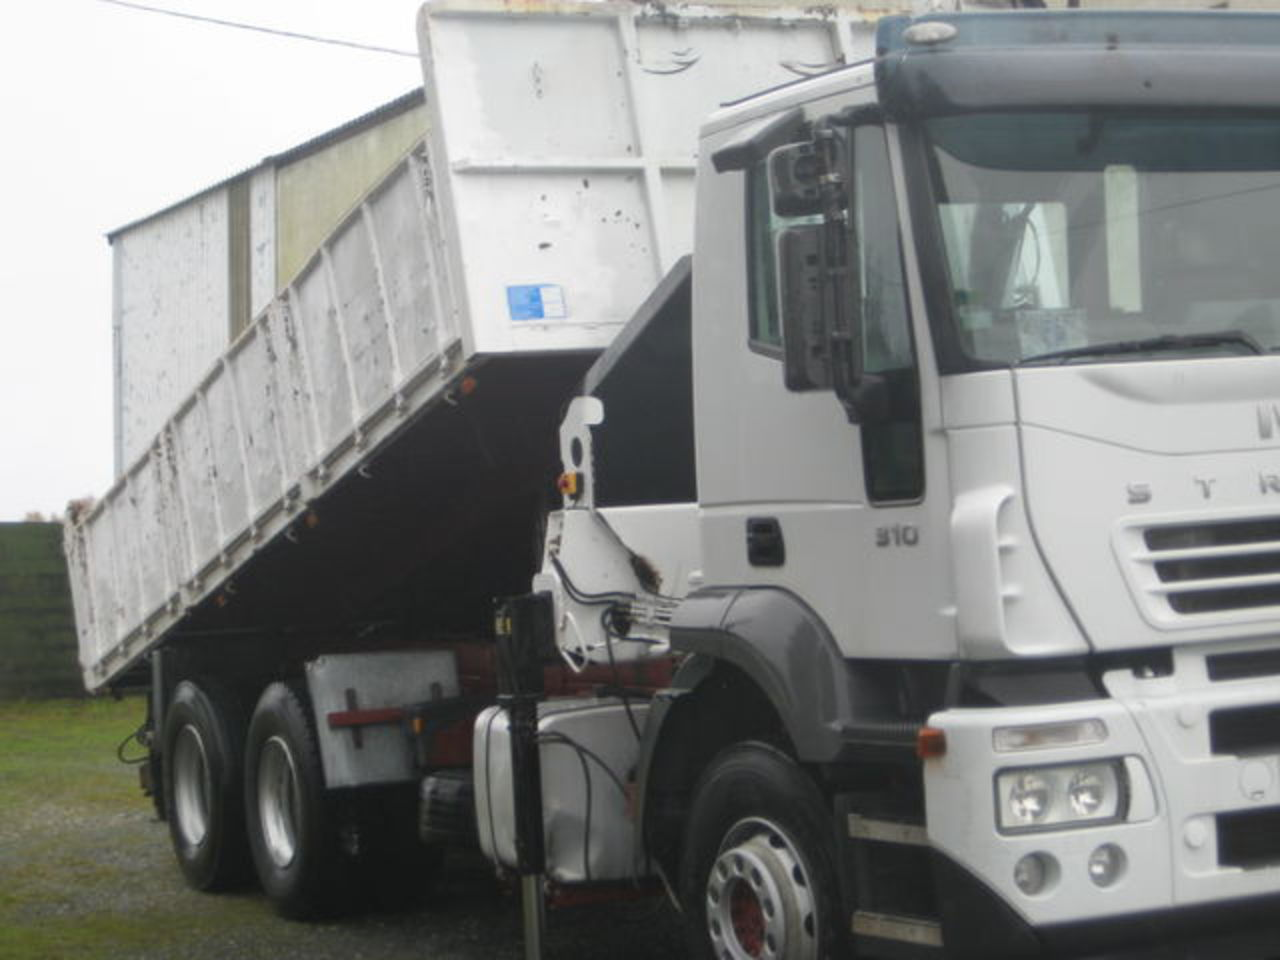 Photo: IVECO stralis 310 tipper